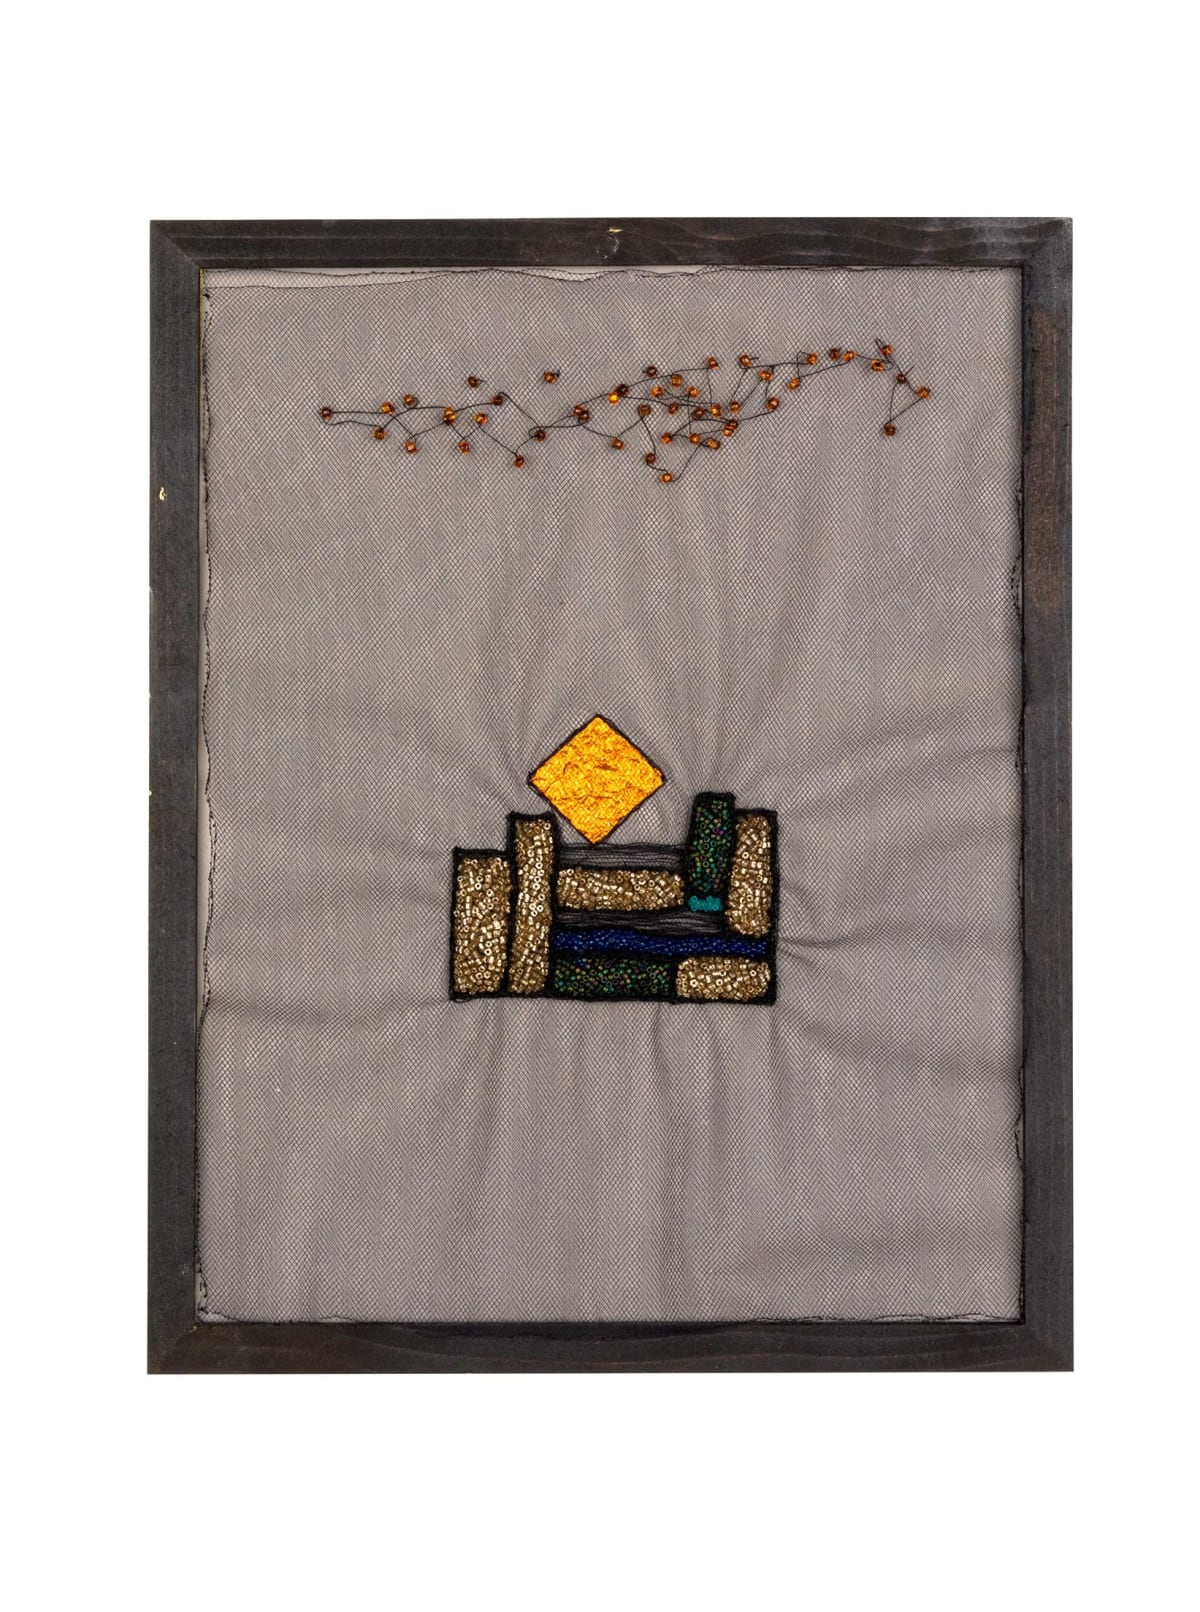 glass beads, thread, and foil on tulle framed, new art dealers